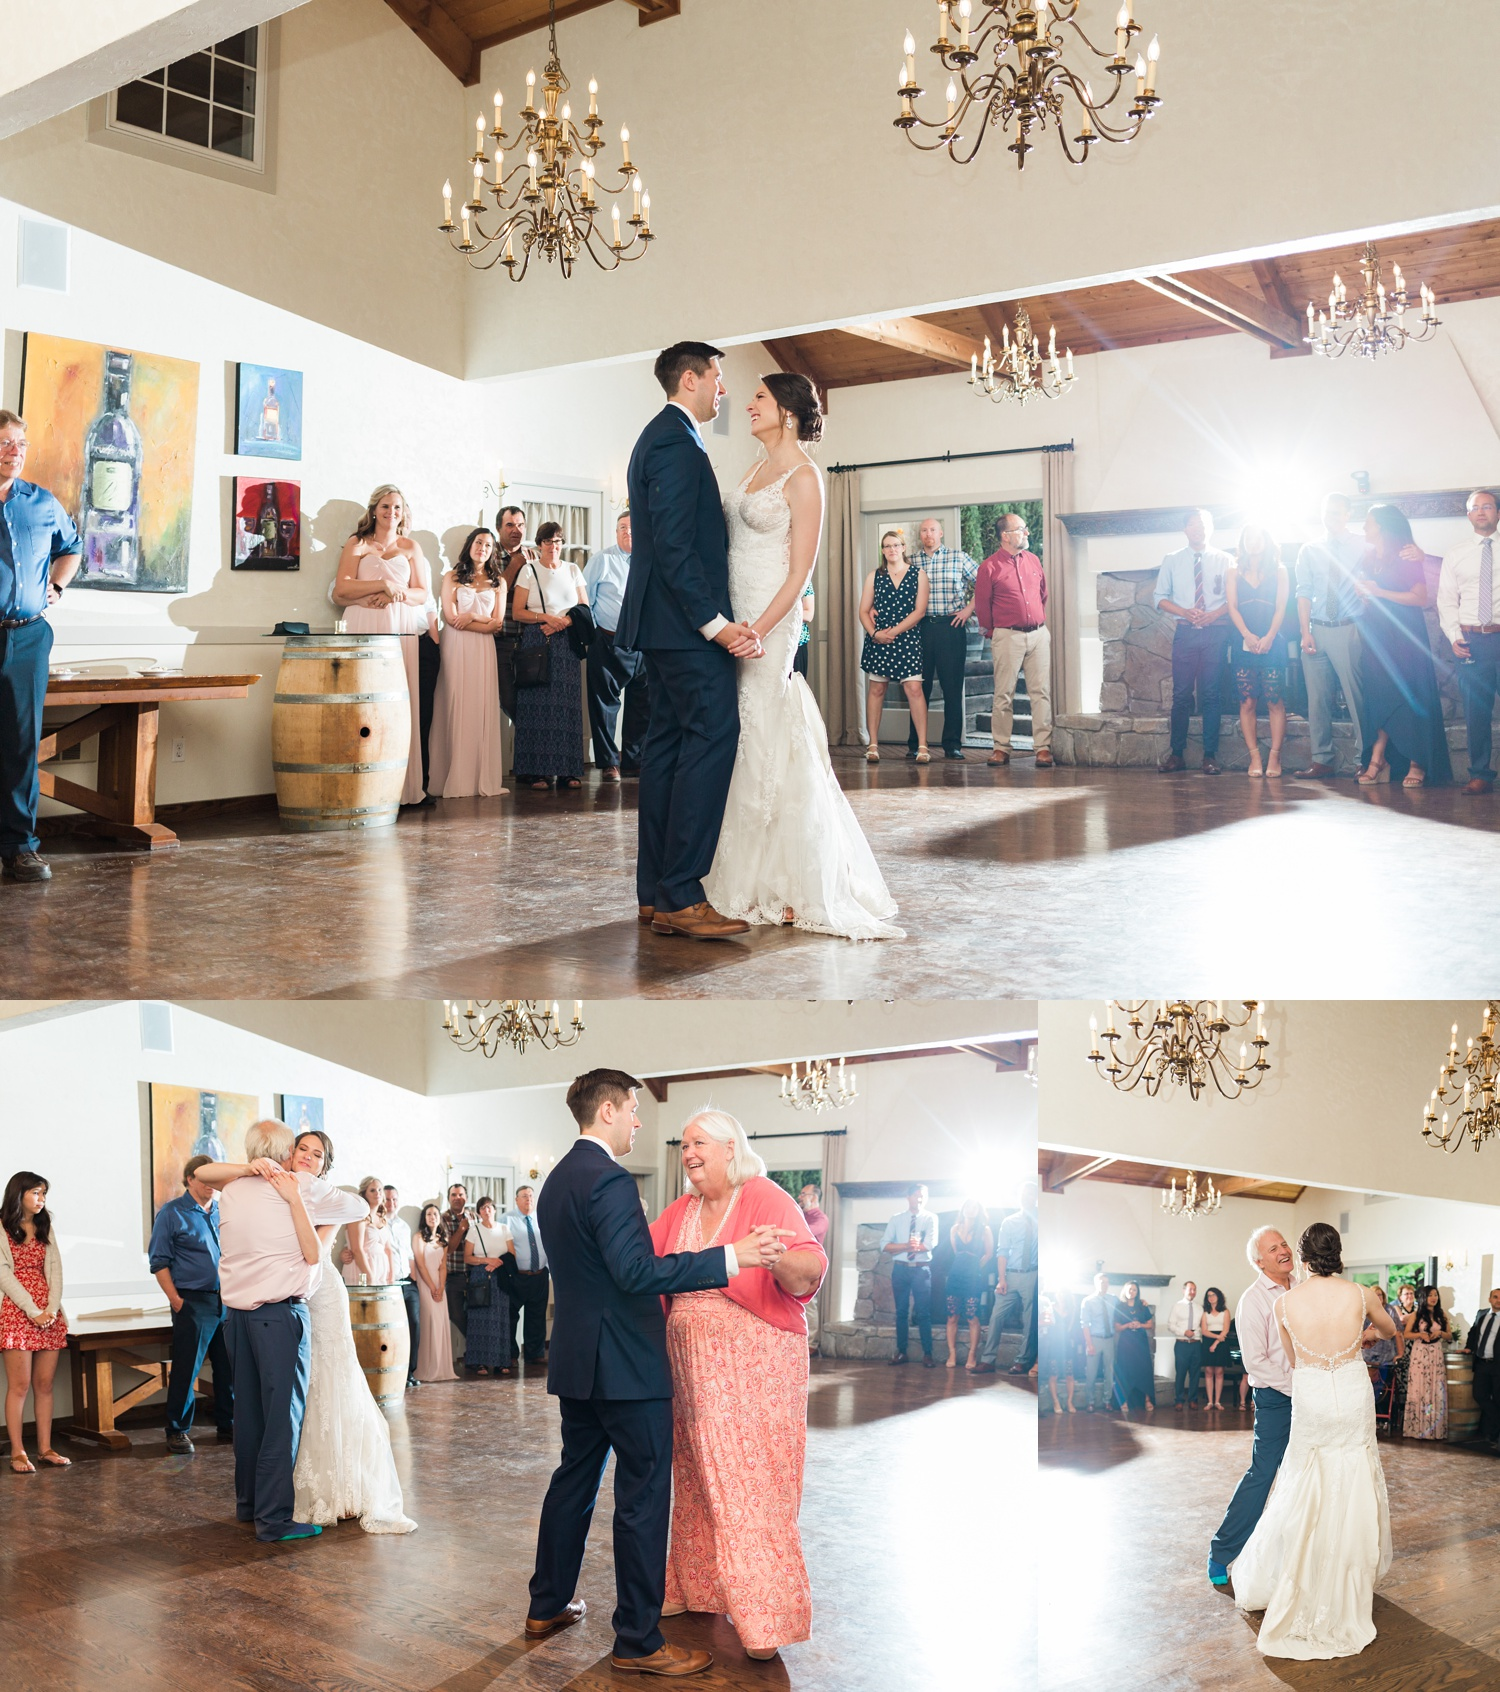 A bride and groom have their first dance at a wedding at Chateau Lill in Woodinville, a wedding venue near Seattle, WA. | Joanna Monger Photography | Seattle & Snohomish Photographer